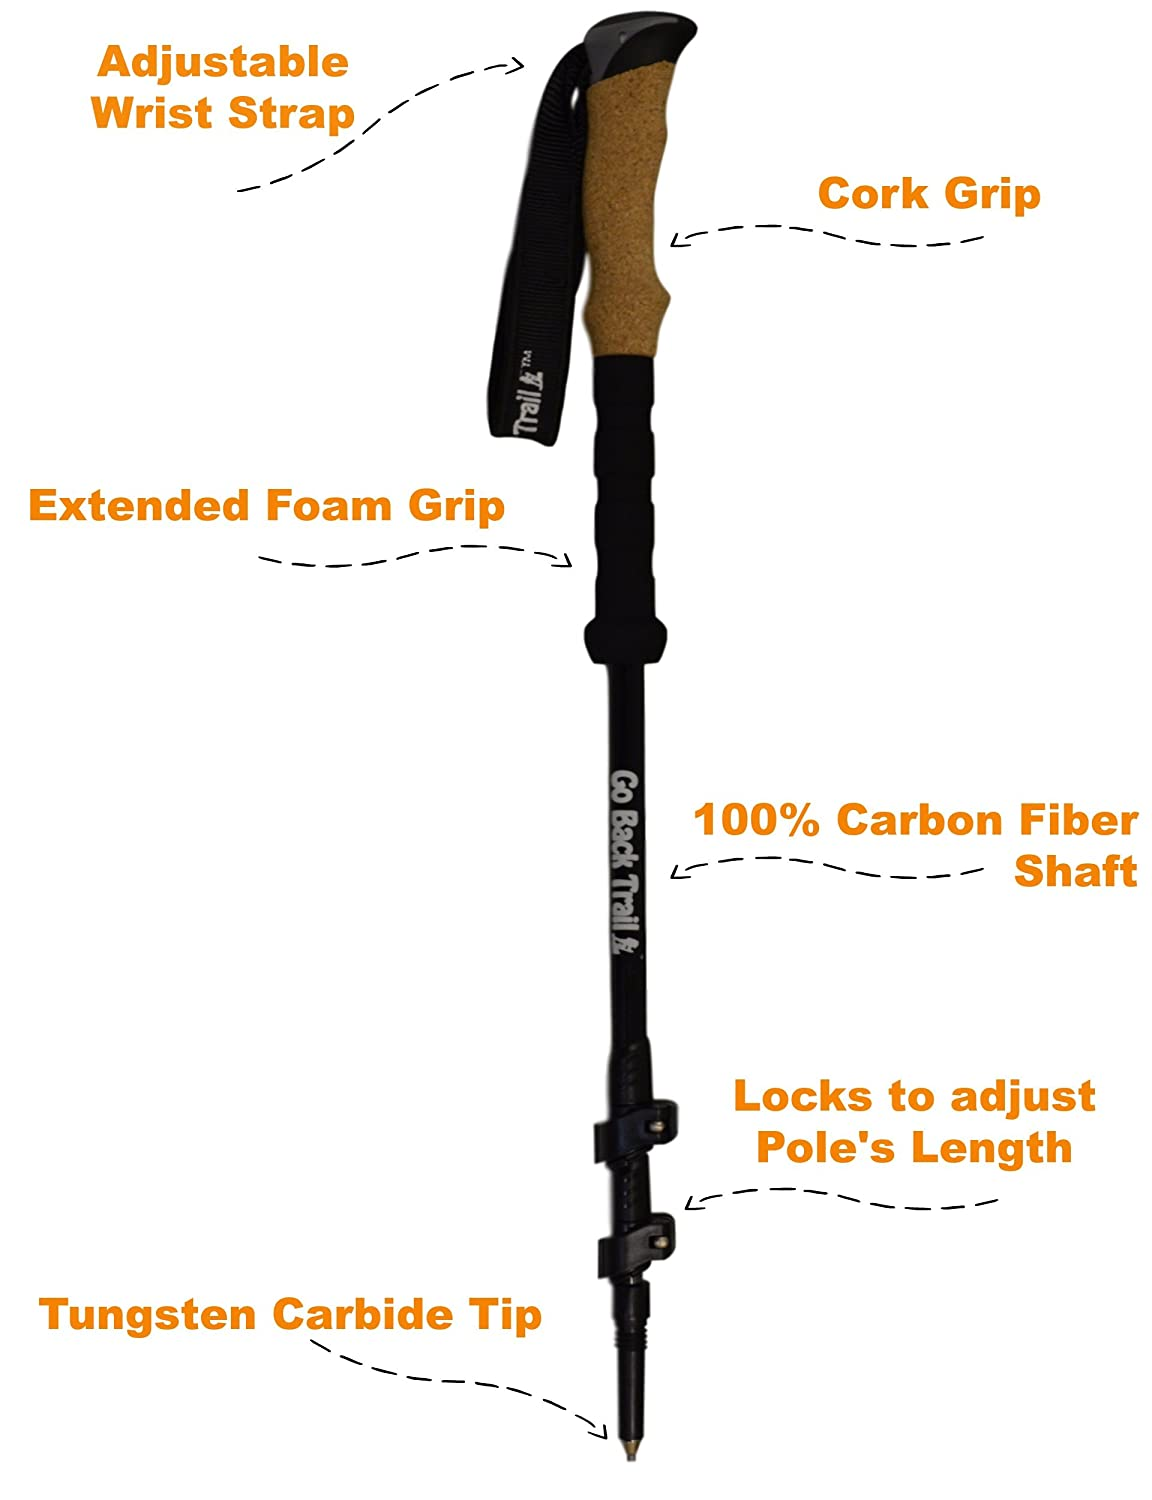 Ultralight Trekking Poles Single or Pair of Collapsible Hiking Staff Stick 100 Carbon Fiber Shaft Cork Grip- Cam Lock – for Snow Sand Dirt and Rock Trails Camping Walking Outdoors